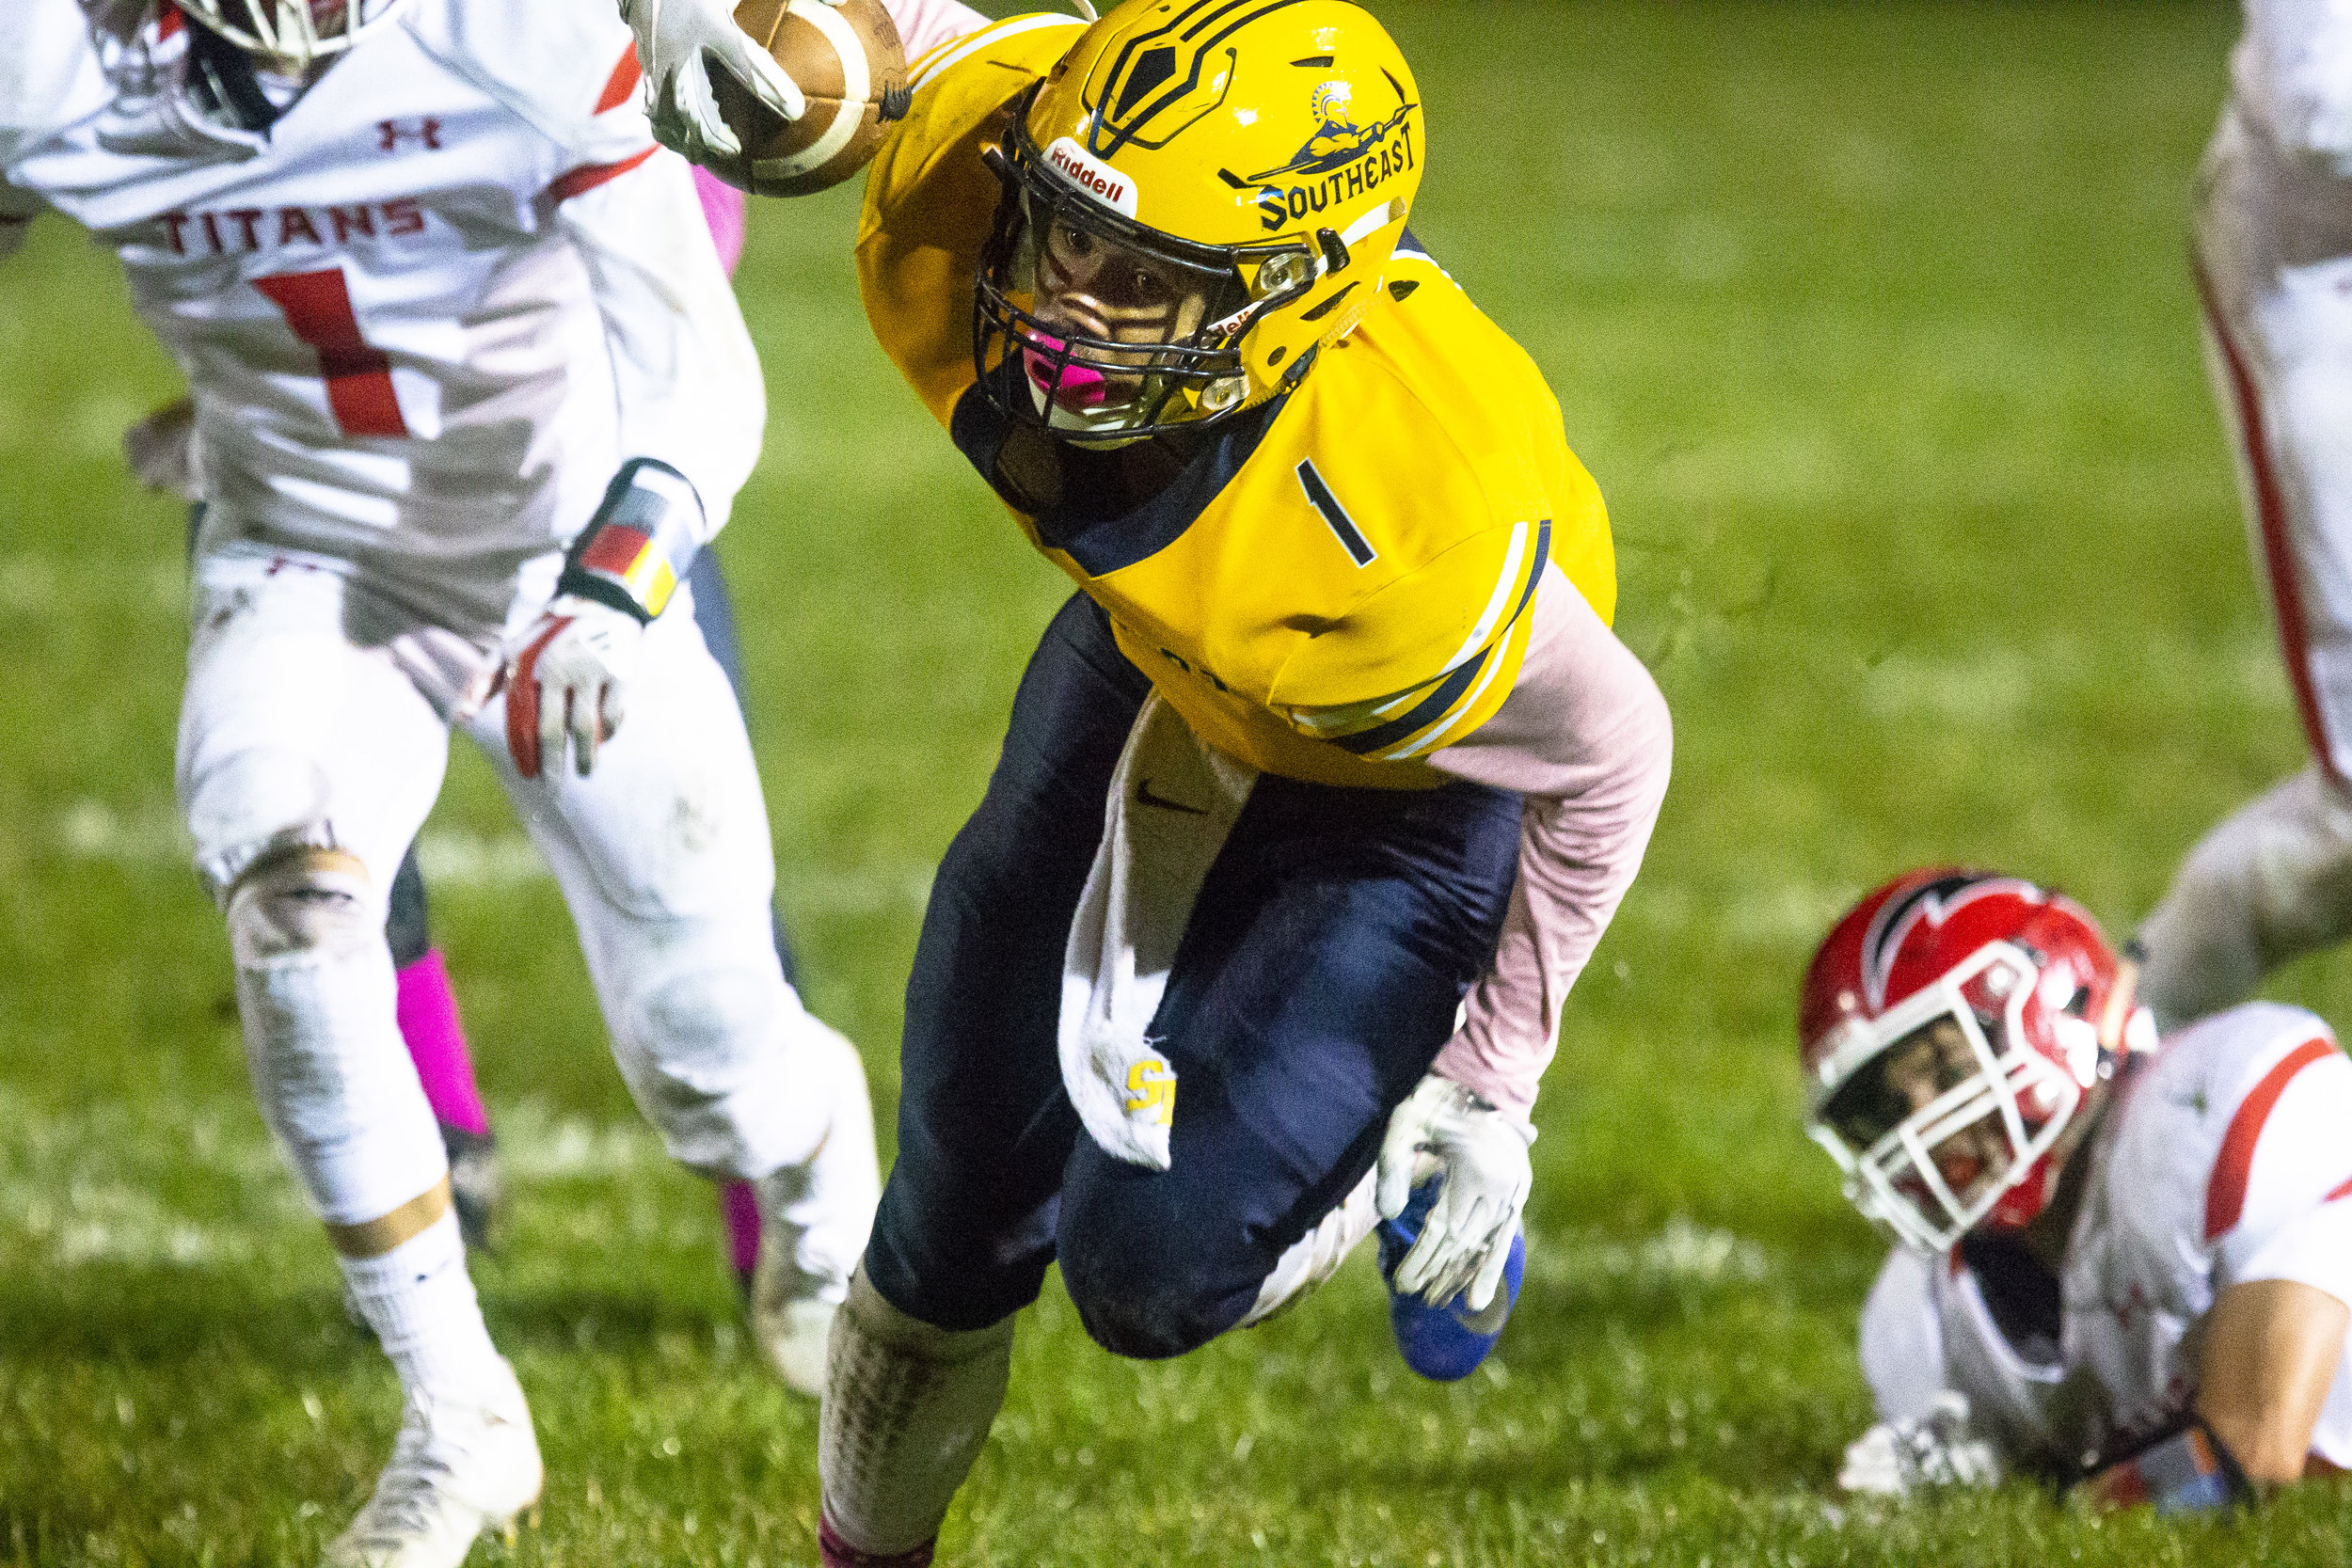 Southeast's Isaiah Cooper scrambles for extra yardage Friday, Oct. 12, 2018 at Southeast High School's Spartan Field in Springfield, Ill. [Rich Saal/The State Journal-Register]